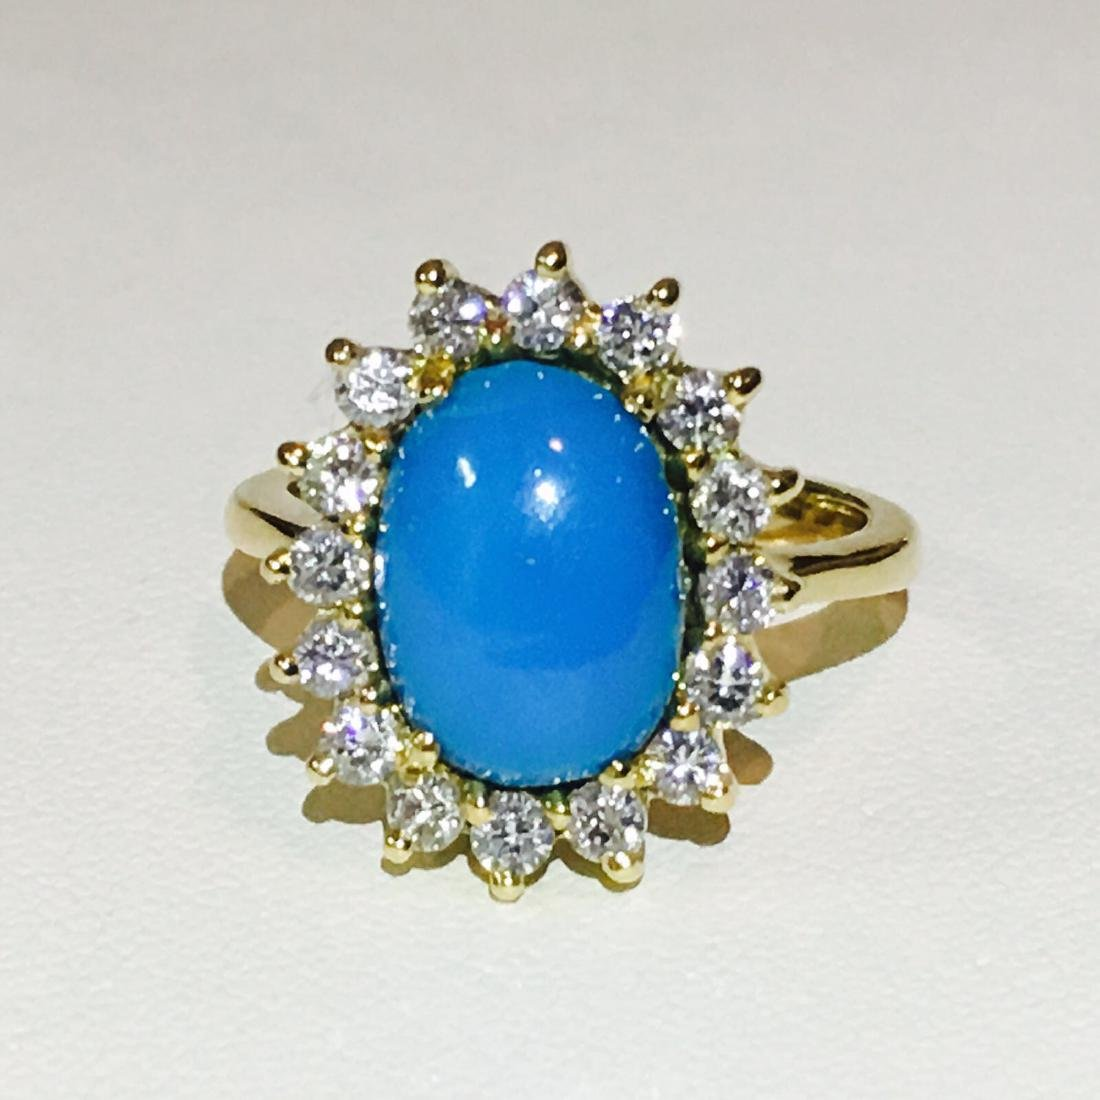 18K Yellow Gold: Turquoise and VS clarity Diamond Ring